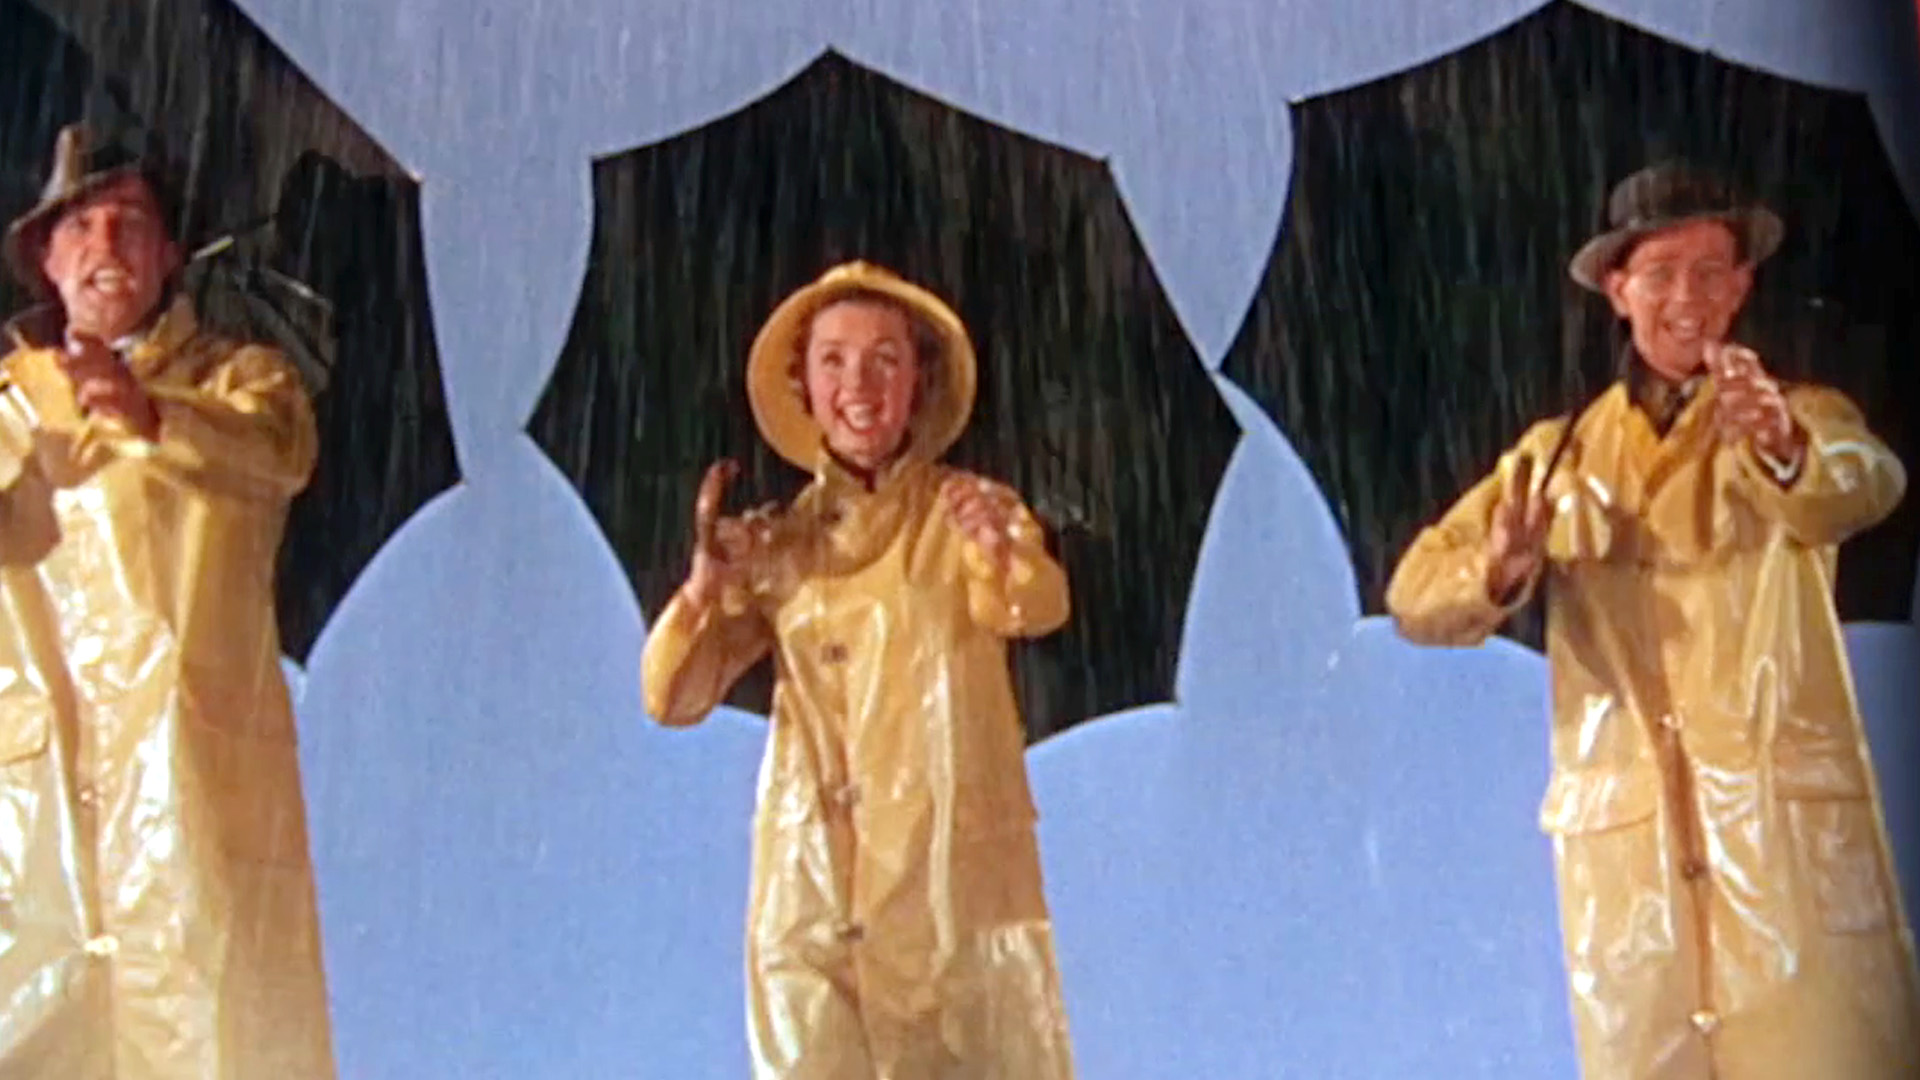 Singin' in the Rain 65th Anniversary (1952) Presented TCM